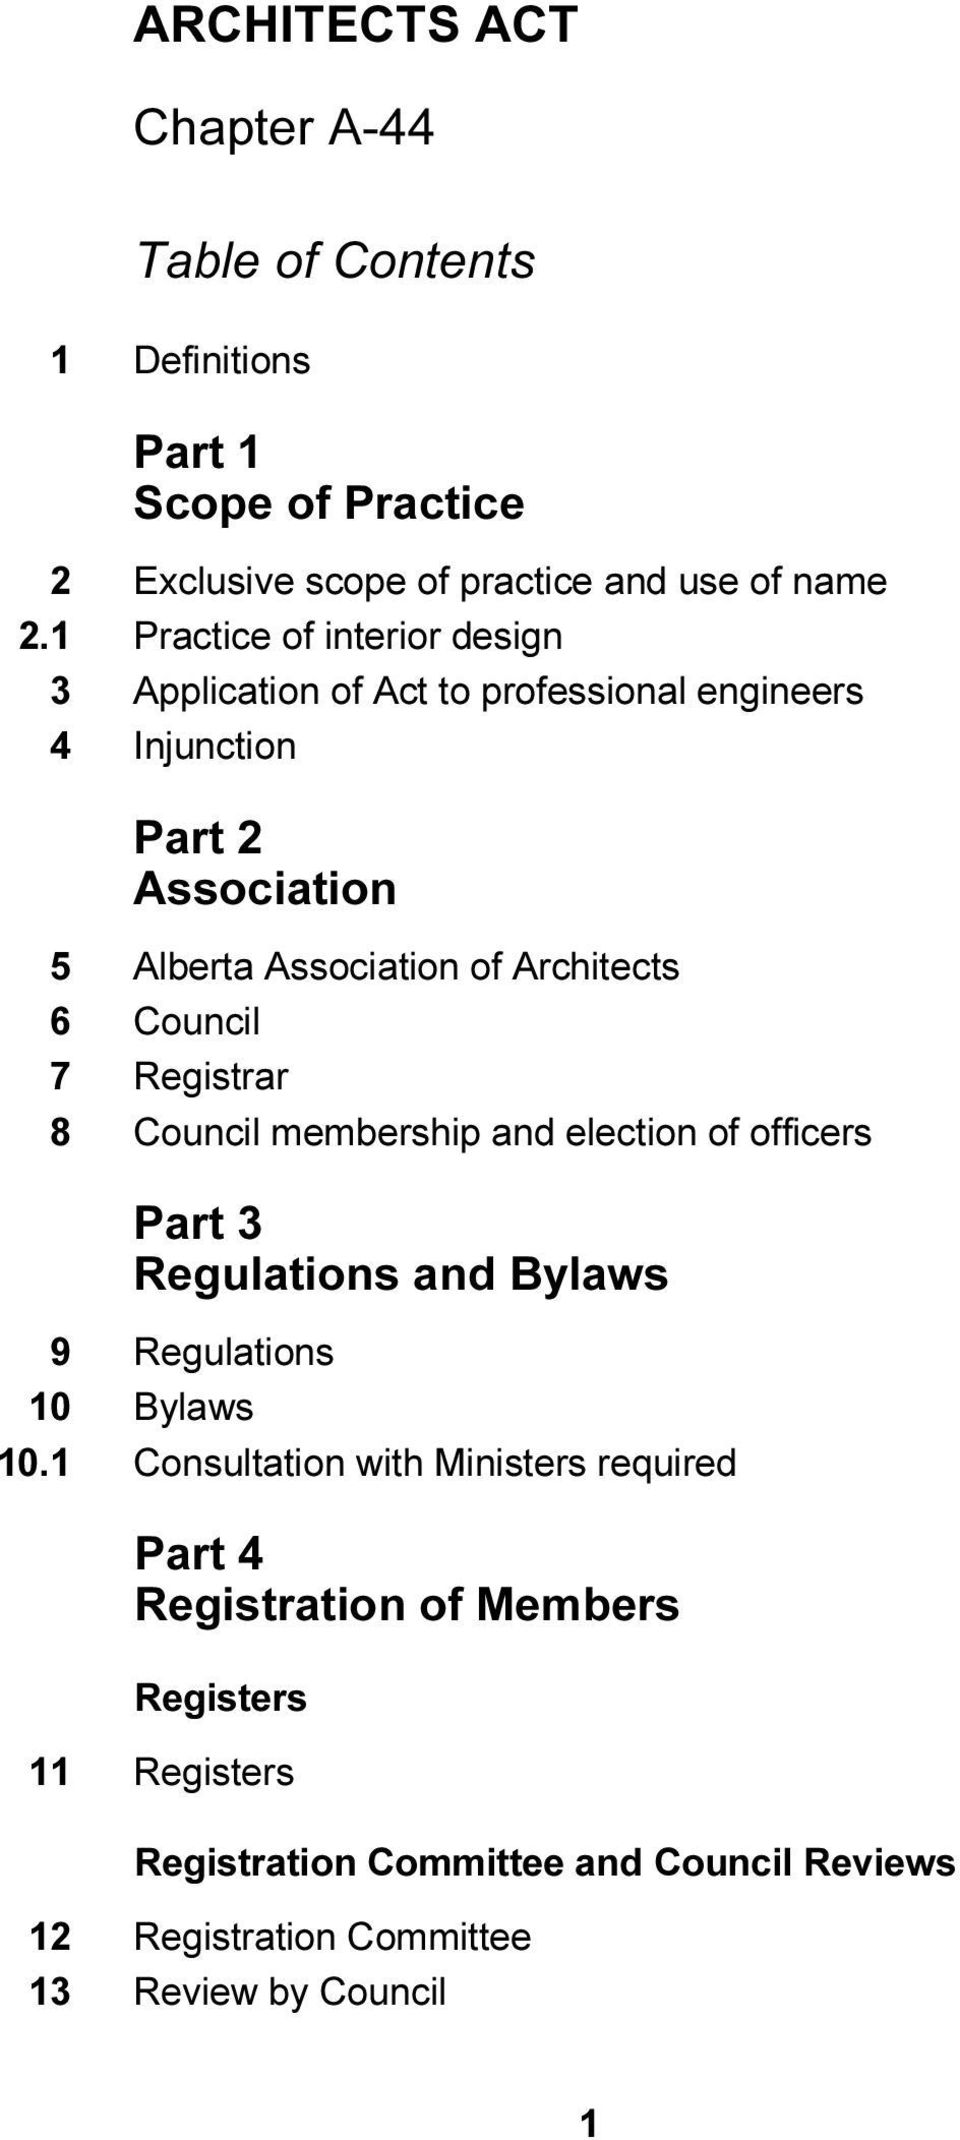 Architects 6 Council 7 Registrar 8 Council membership and election of officers Part 3 Regulations and Bylaws 9 Regulations 10 Bylaws 10.